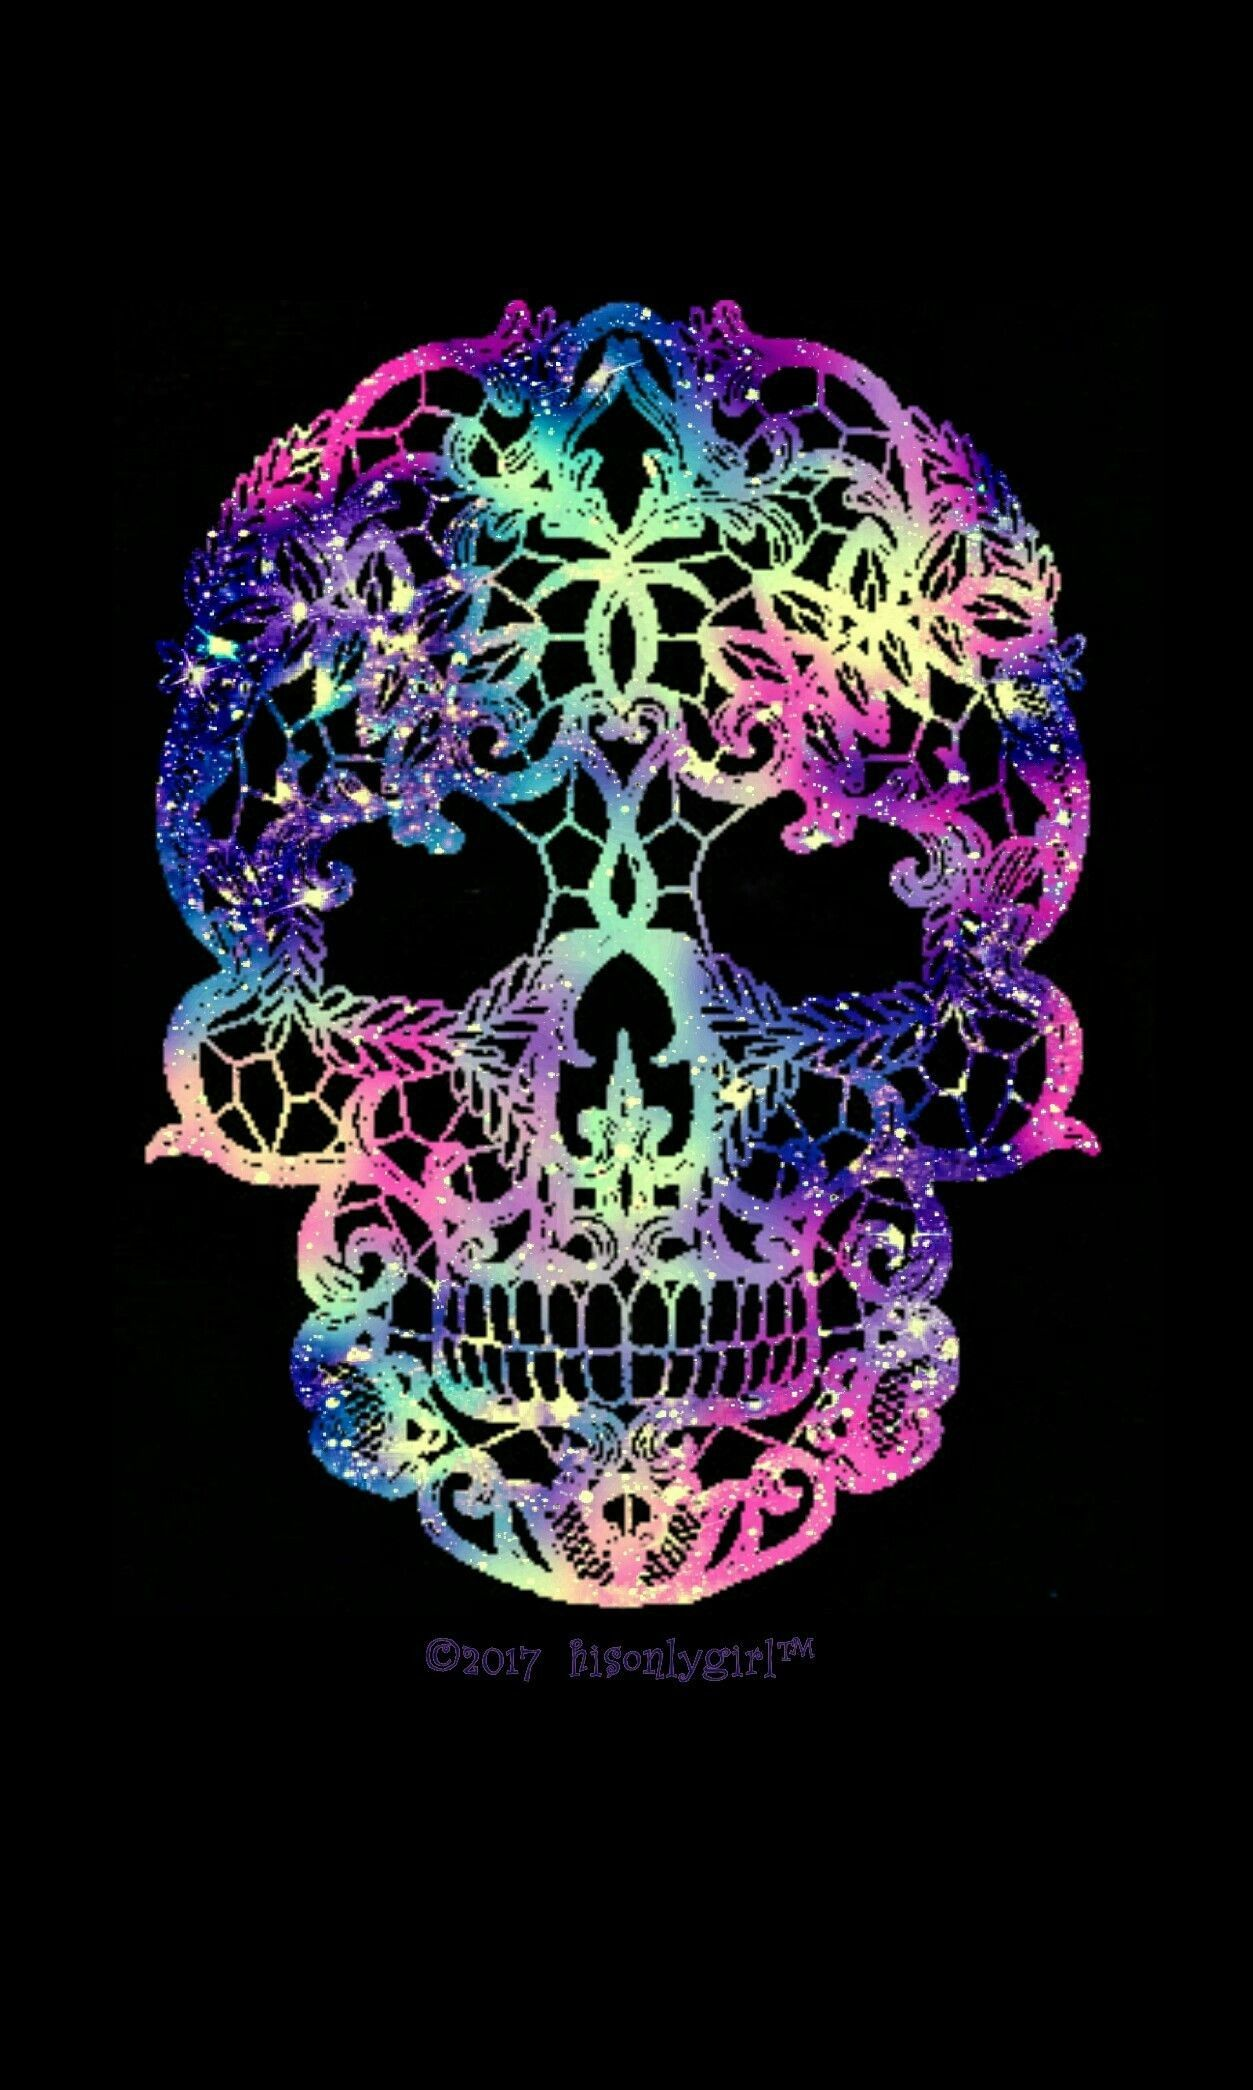 Hipster Wallpaper, Skull Wallpaper, Galaxy Wallpaper, Skull Pictures, Skull Art, Sugar